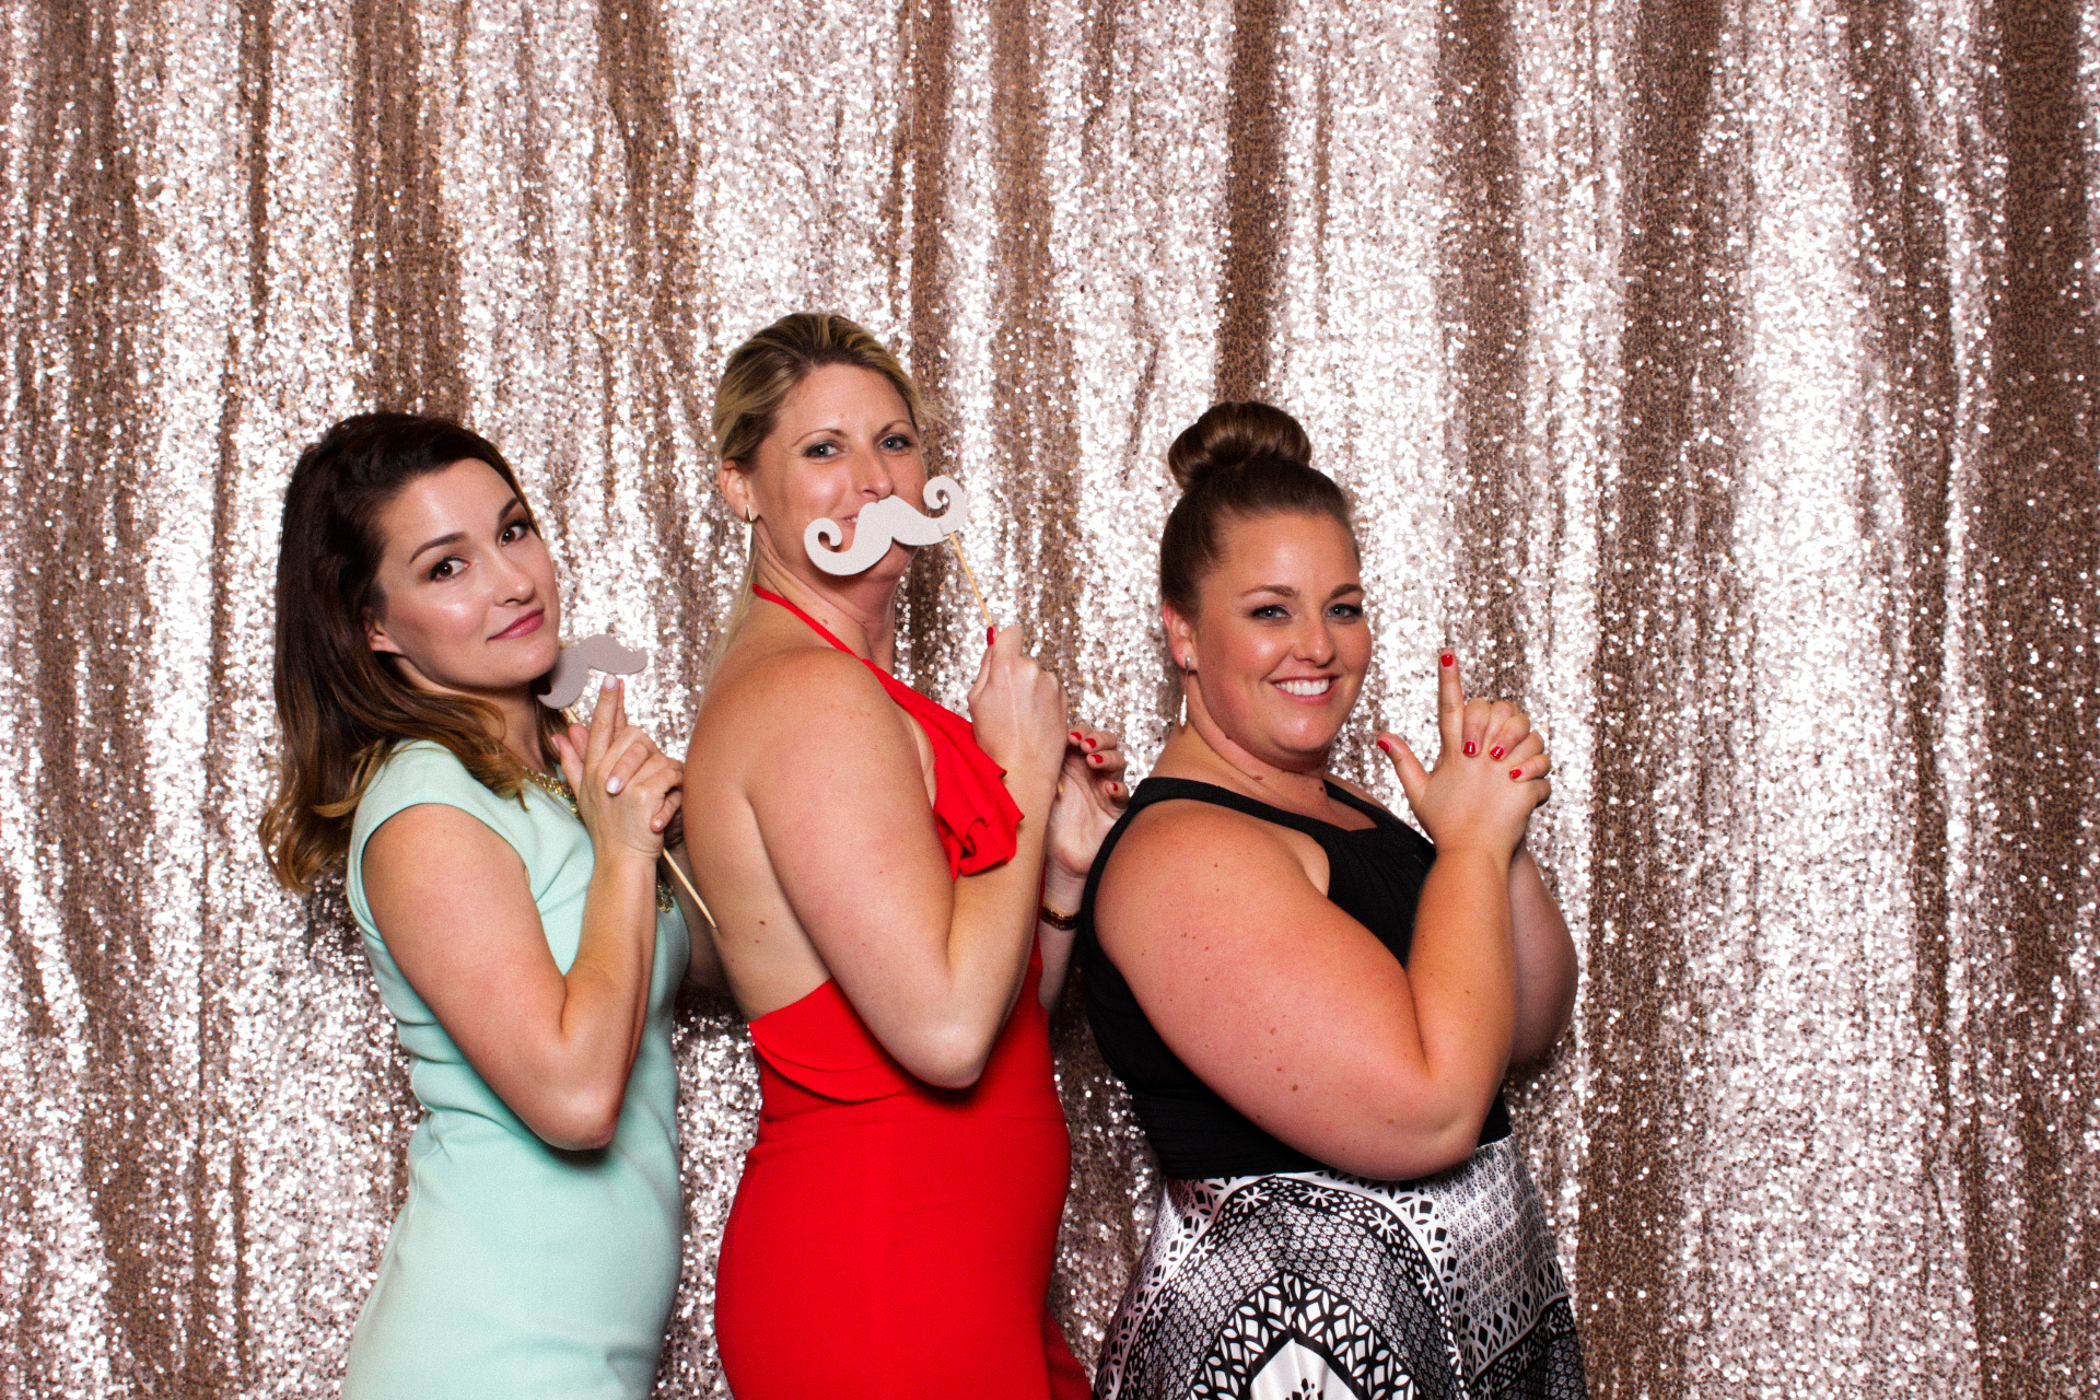 The_Reverie_Booth-Boca_Raton_Photobooth-Wedding_Photobooth_Florida-Florida_Photobooth_Rental-Wedding_Photobooth-037.jpg